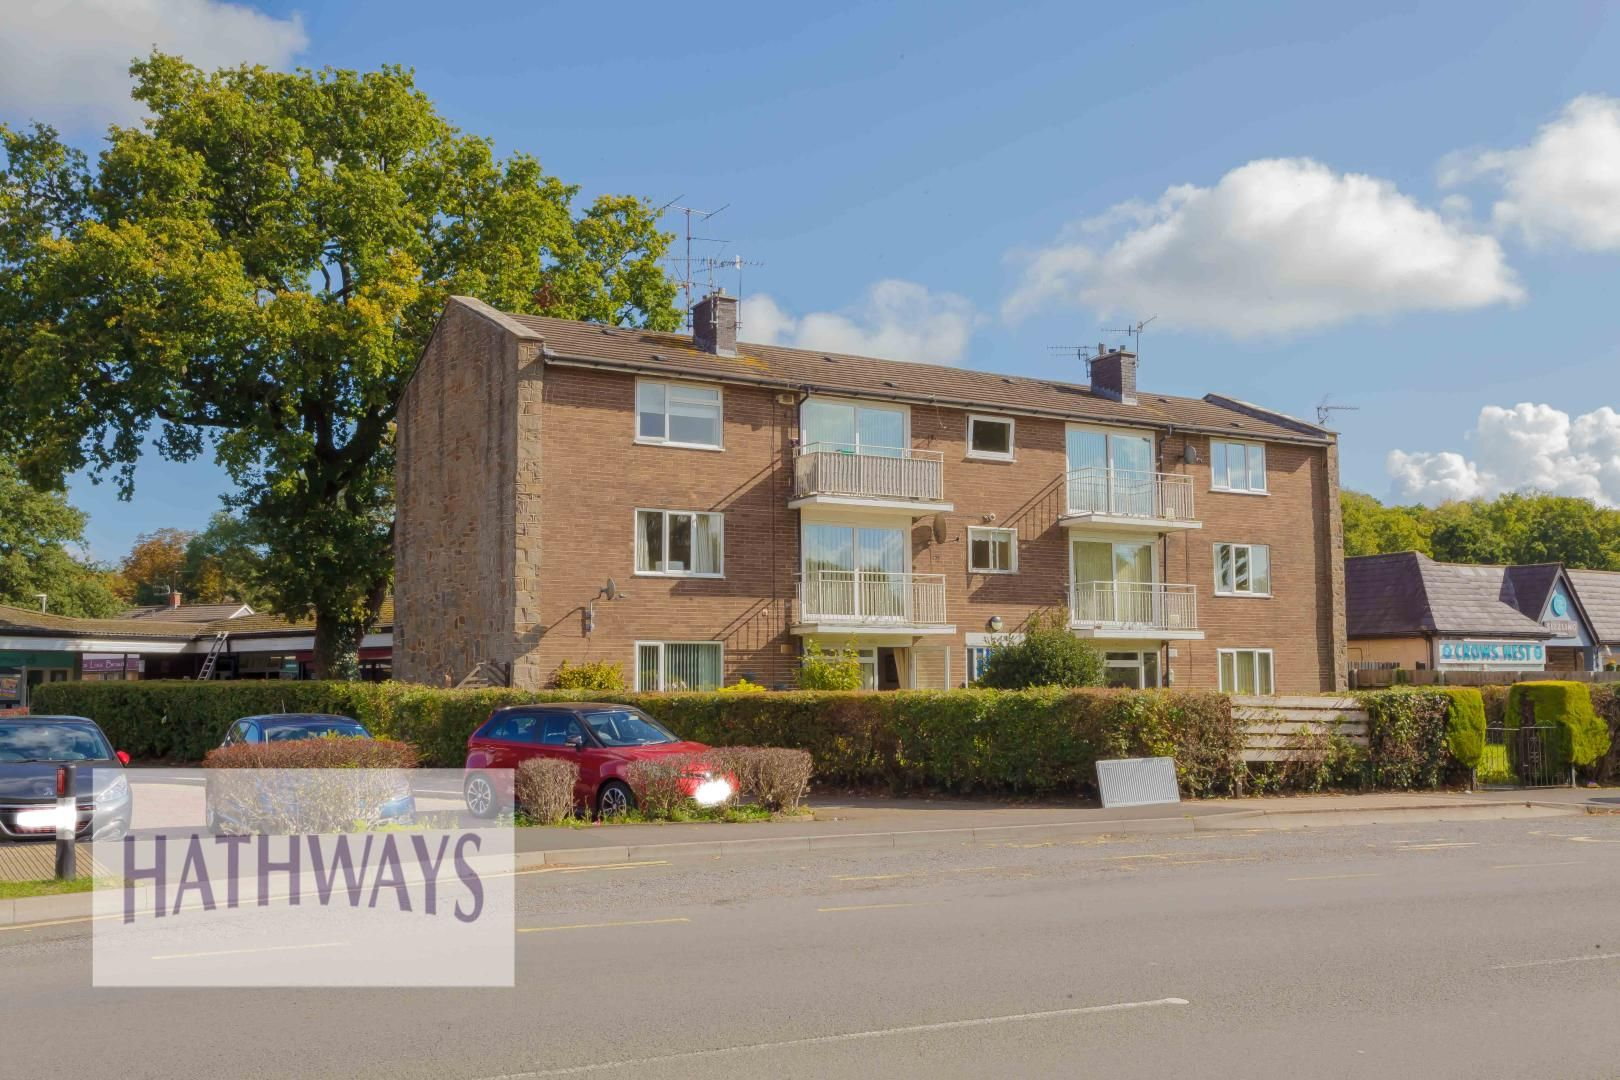 2 bed house for sale in Llanyravon Square - Property Image 1